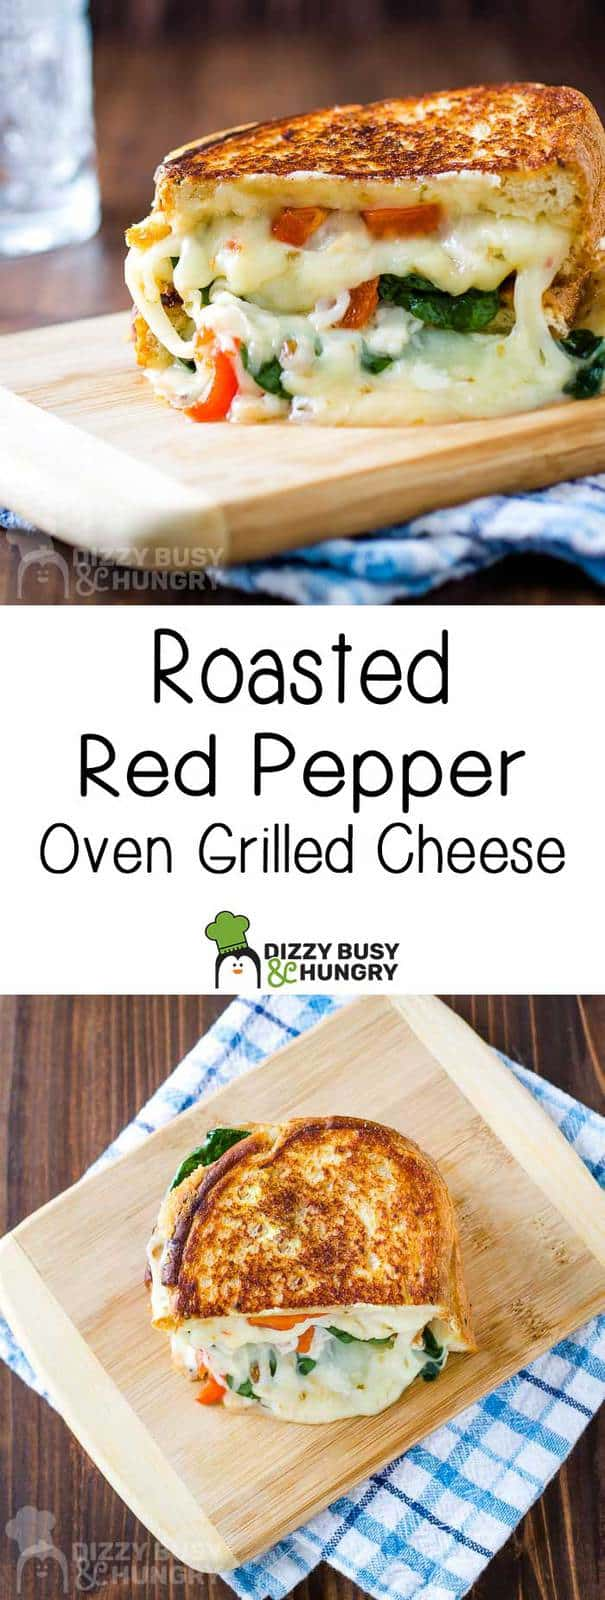 long pin of roasted red pepper oven grilled cheese with two photos and text